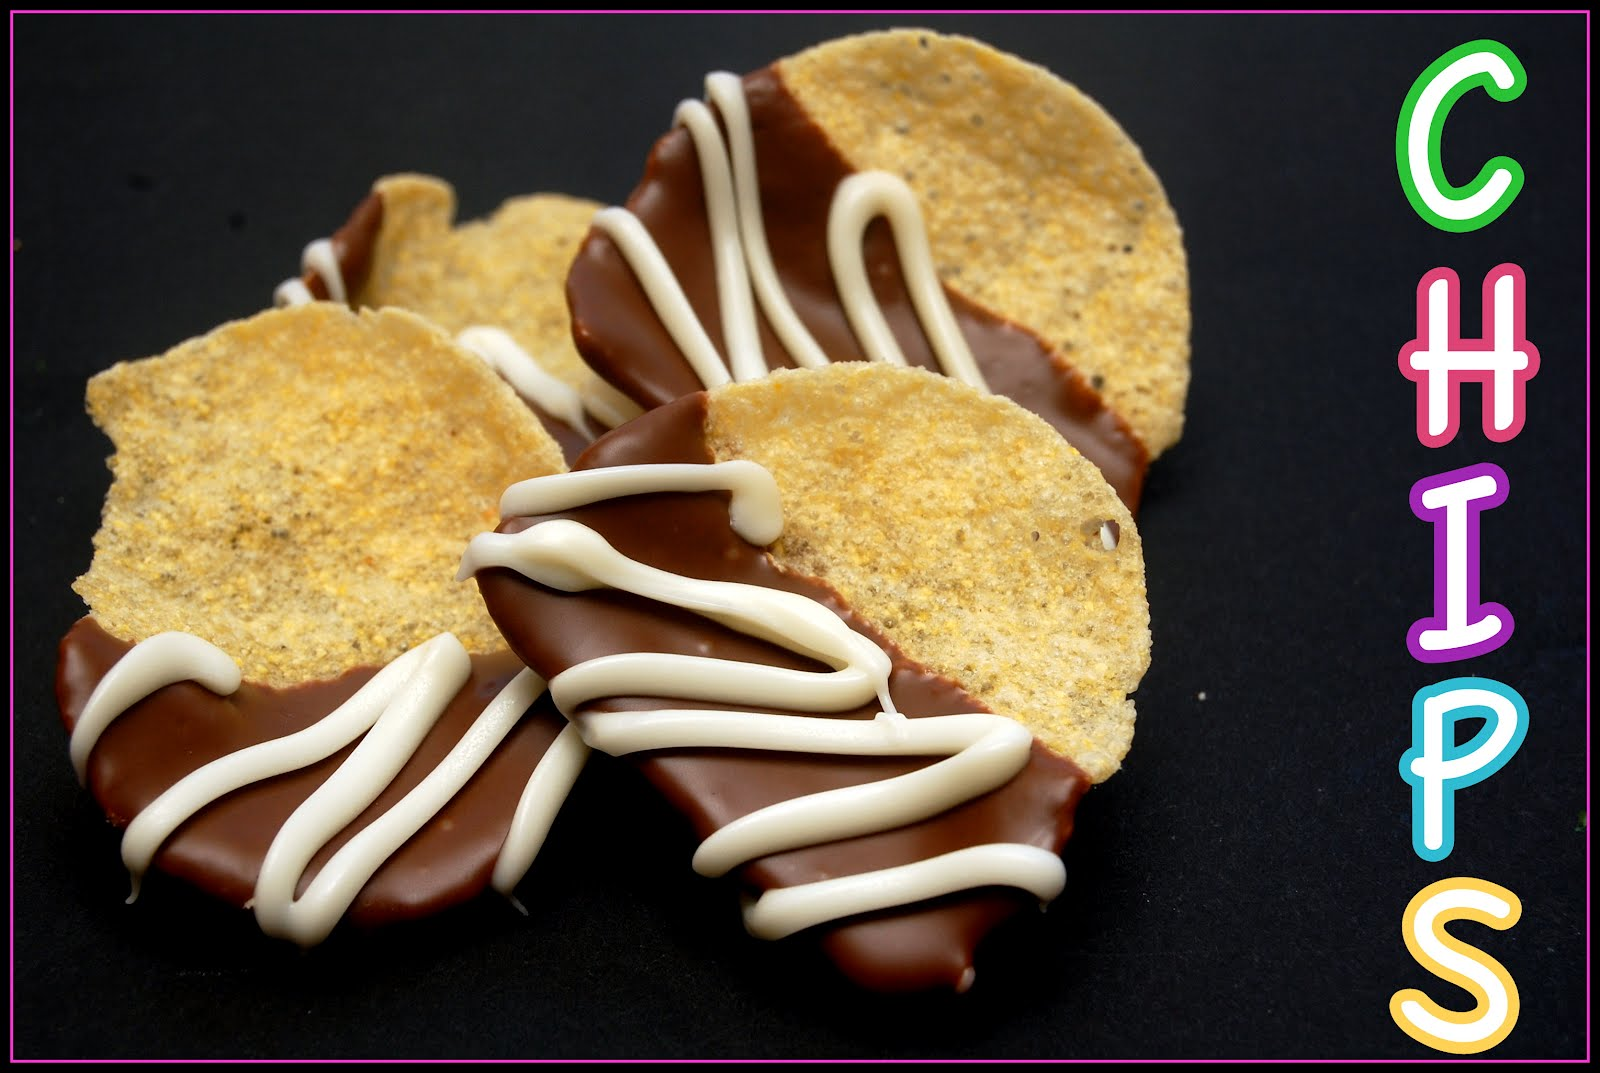 CHOCOLATE DIPPED POTATO CHIPS - Hugs and Cookies XOXO